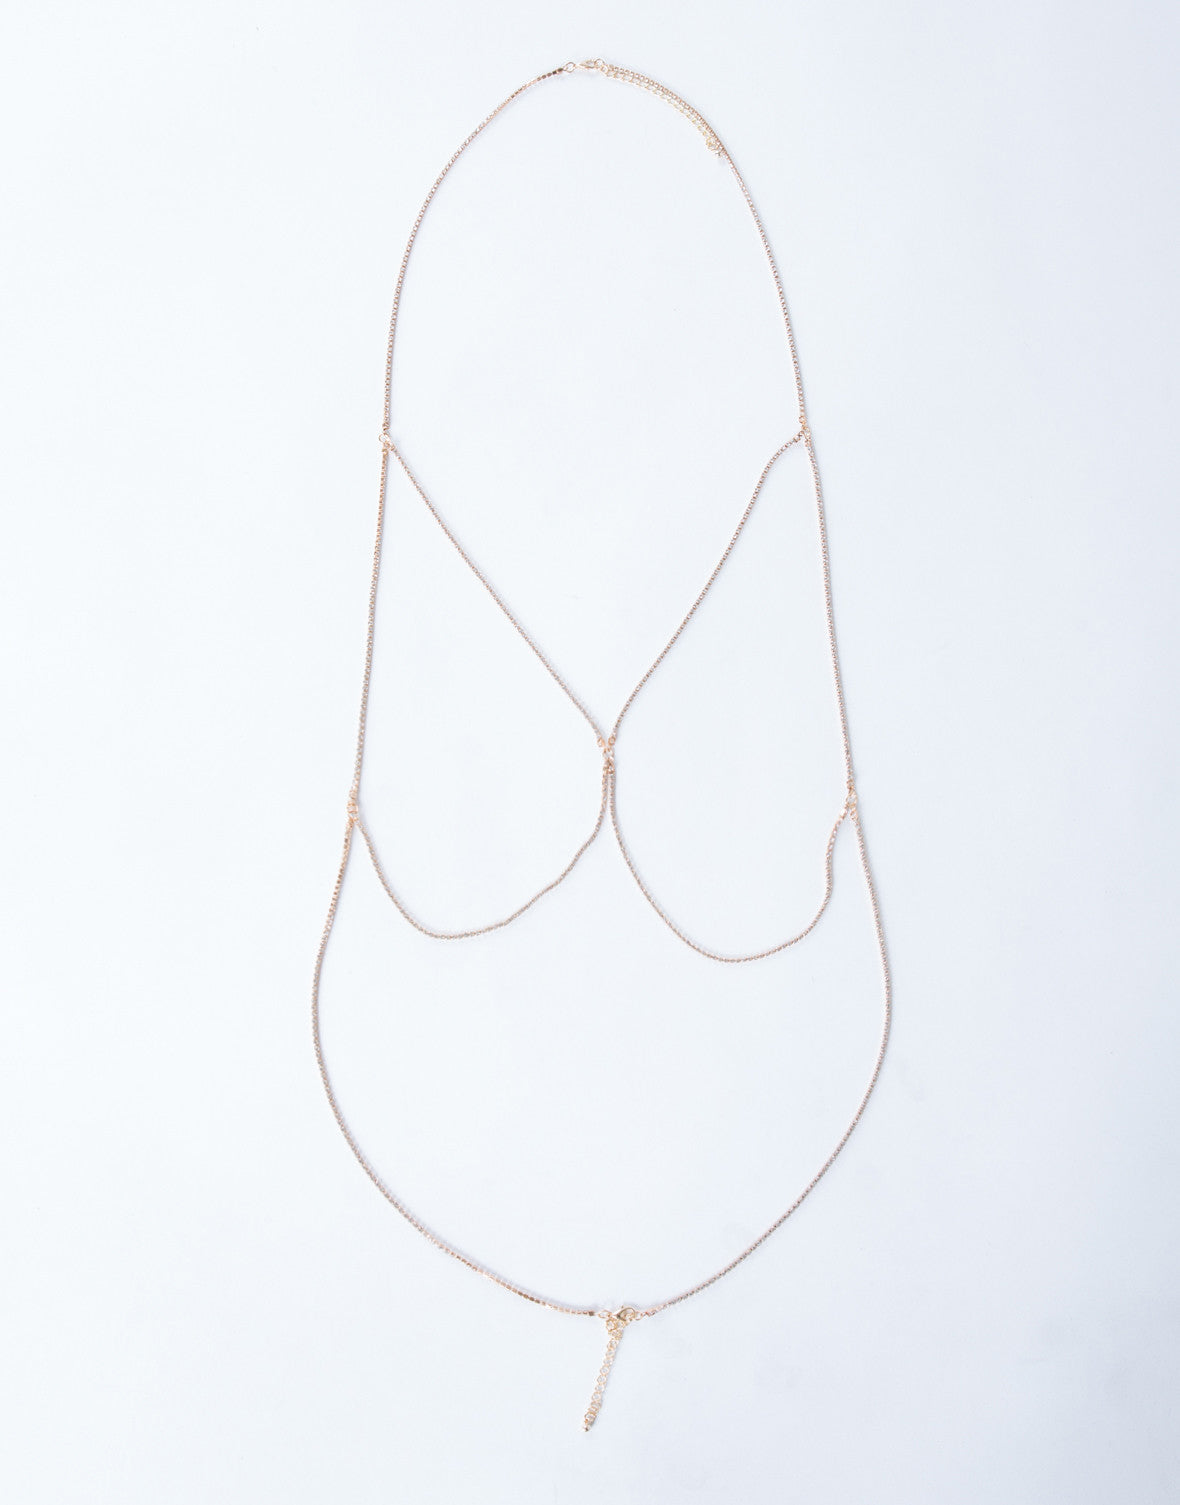 Shimmery Body Chain